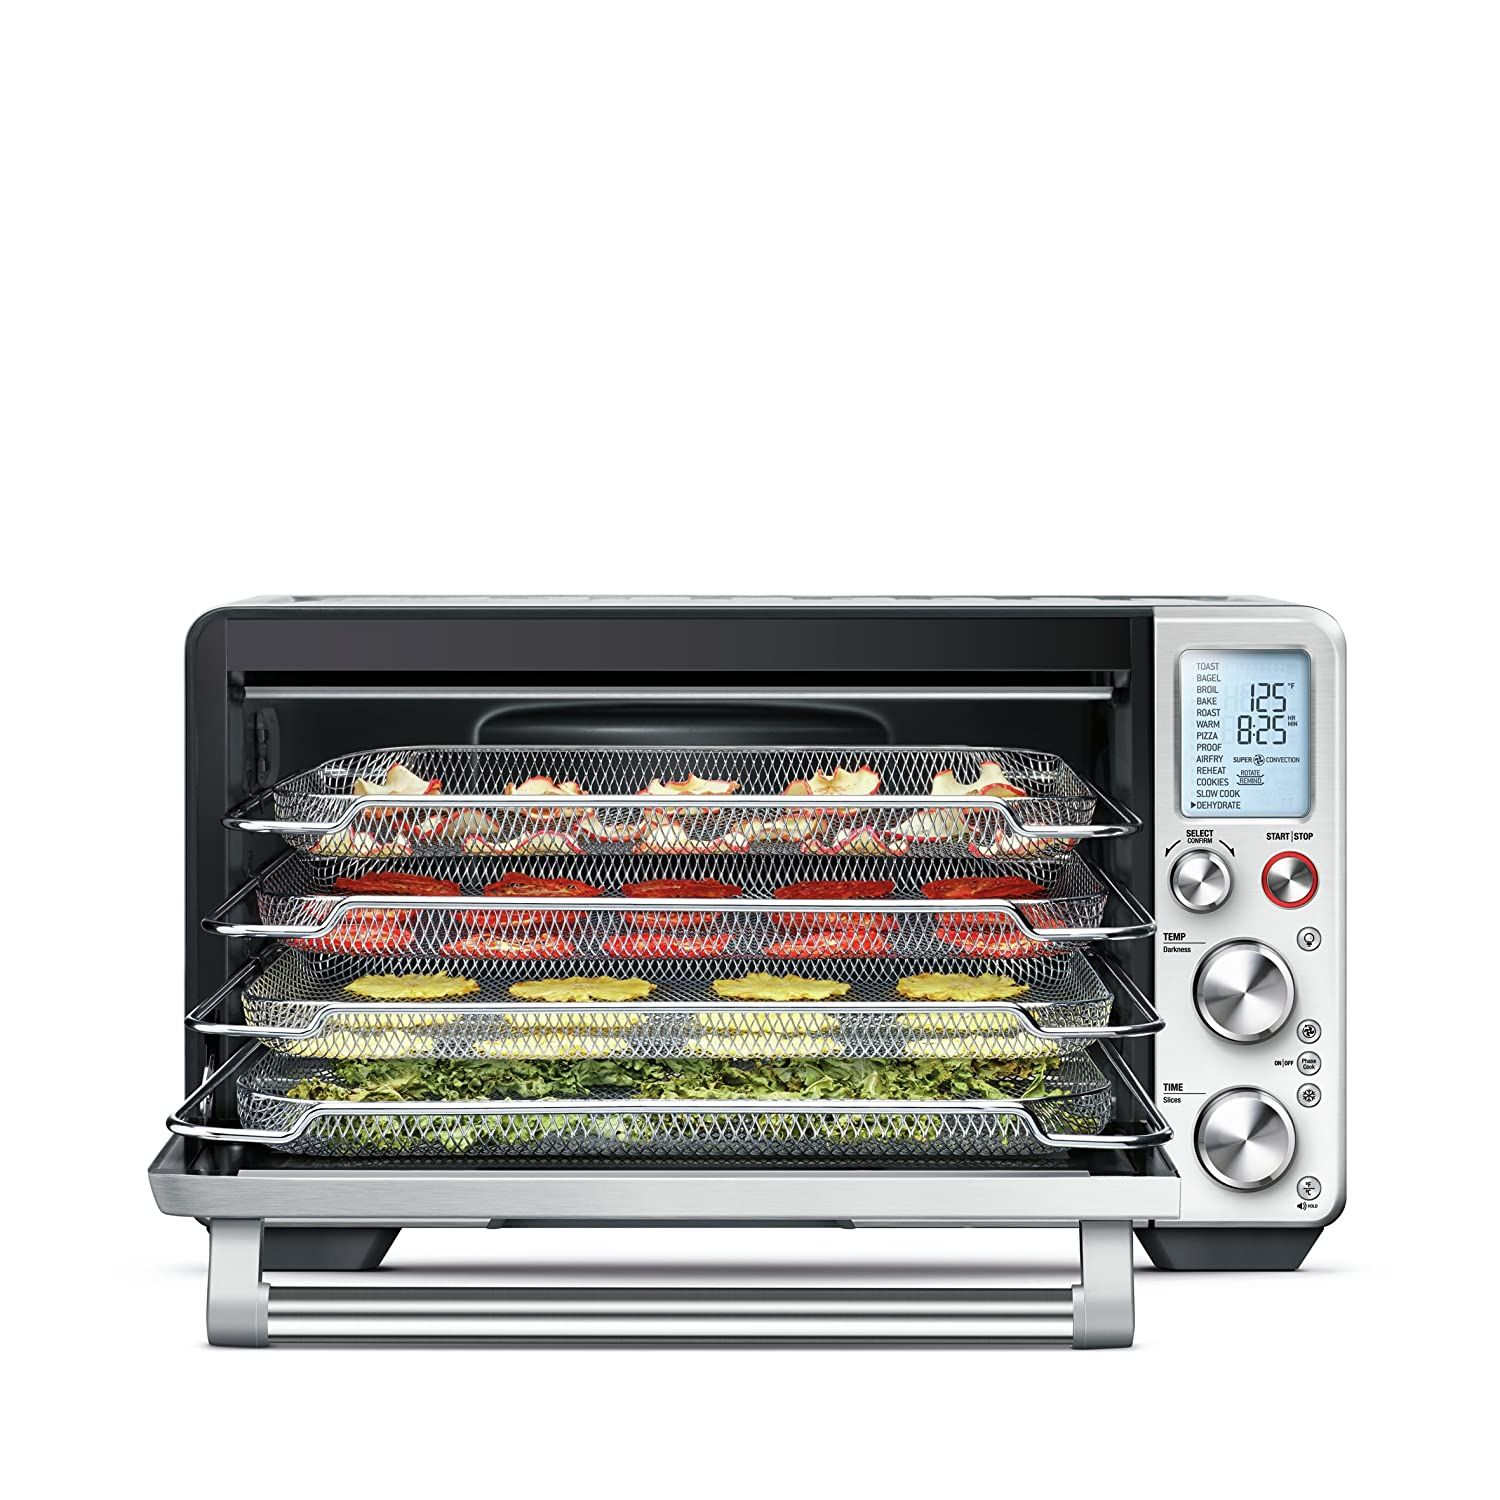 Breville Bov900bss Convection And Air Fry Smart Oven Air To View Further For This Item Visit The Image Lin In 2020 Convection Toaster Oven Toaster Oven Smart Oven